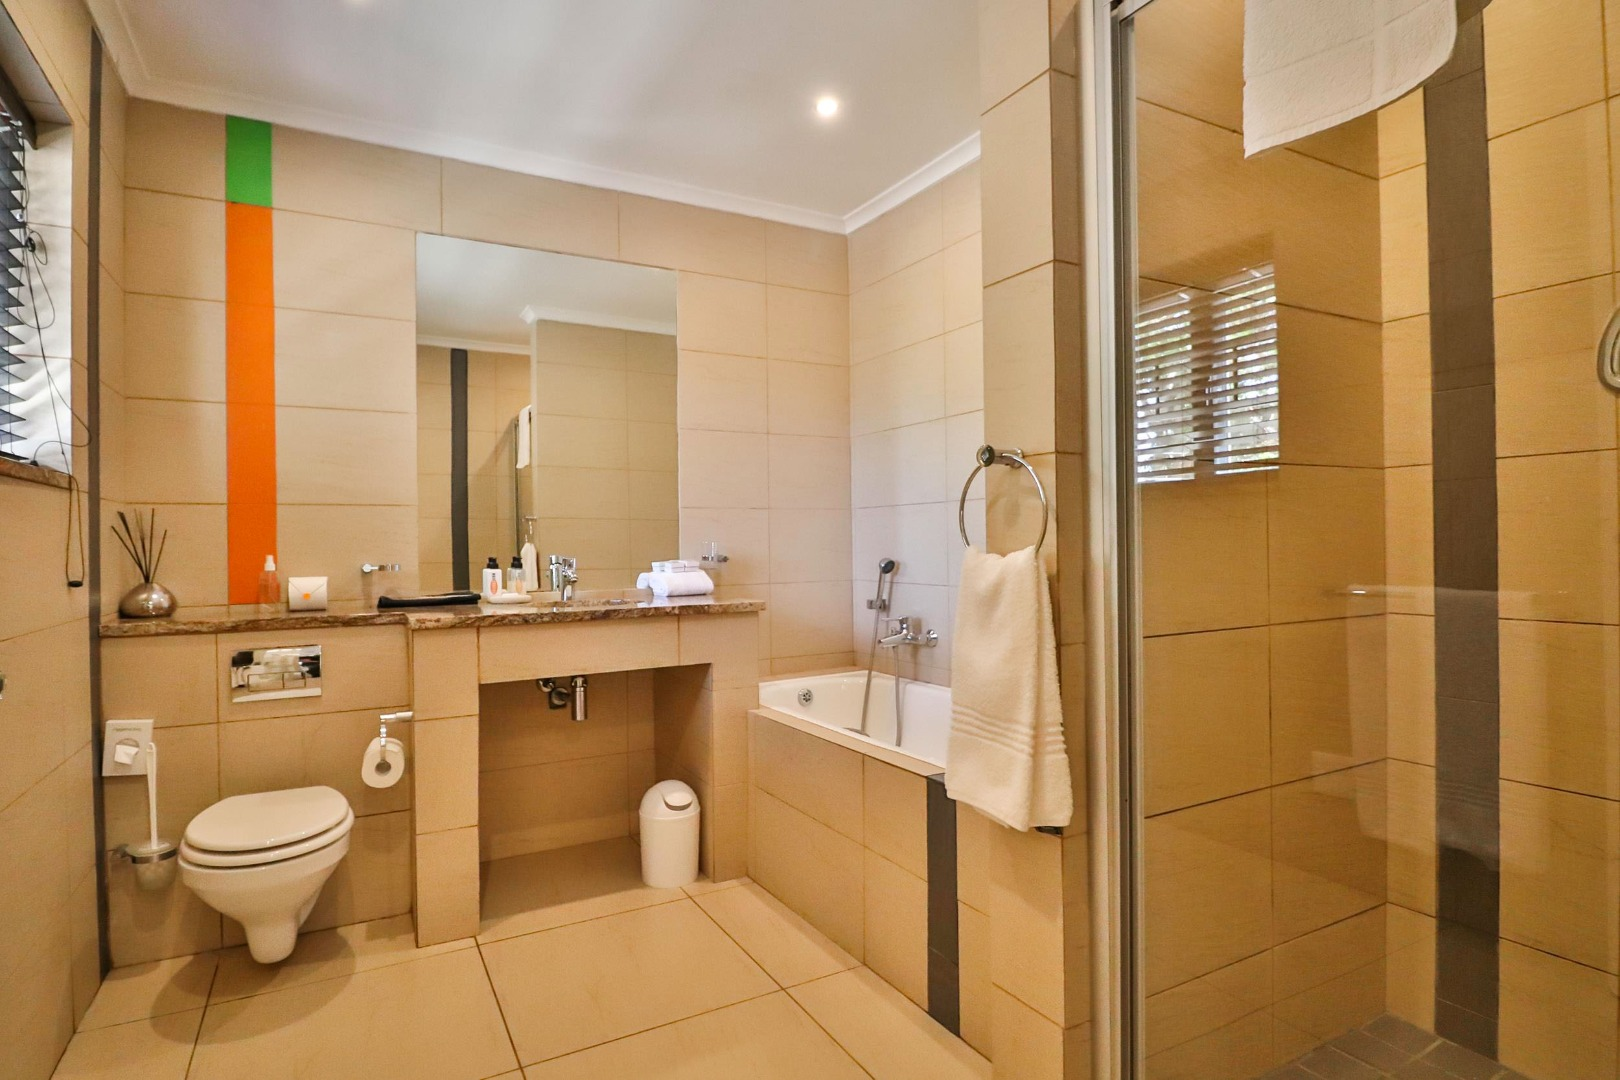 9 Bedroom House For Sale in Old Place